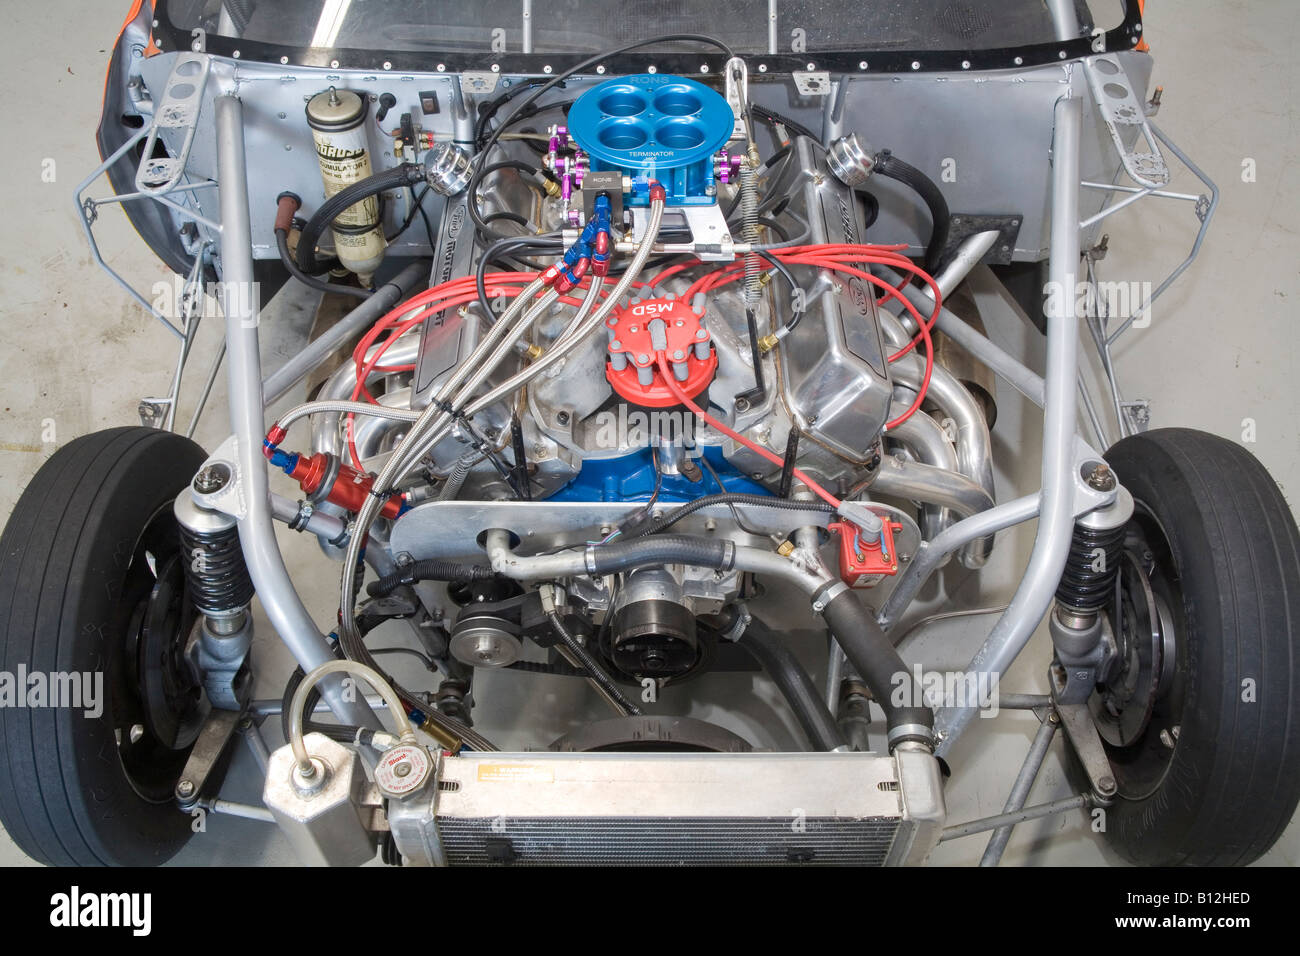 naturally aspirated and injected Ford V8 racing engine as used in a